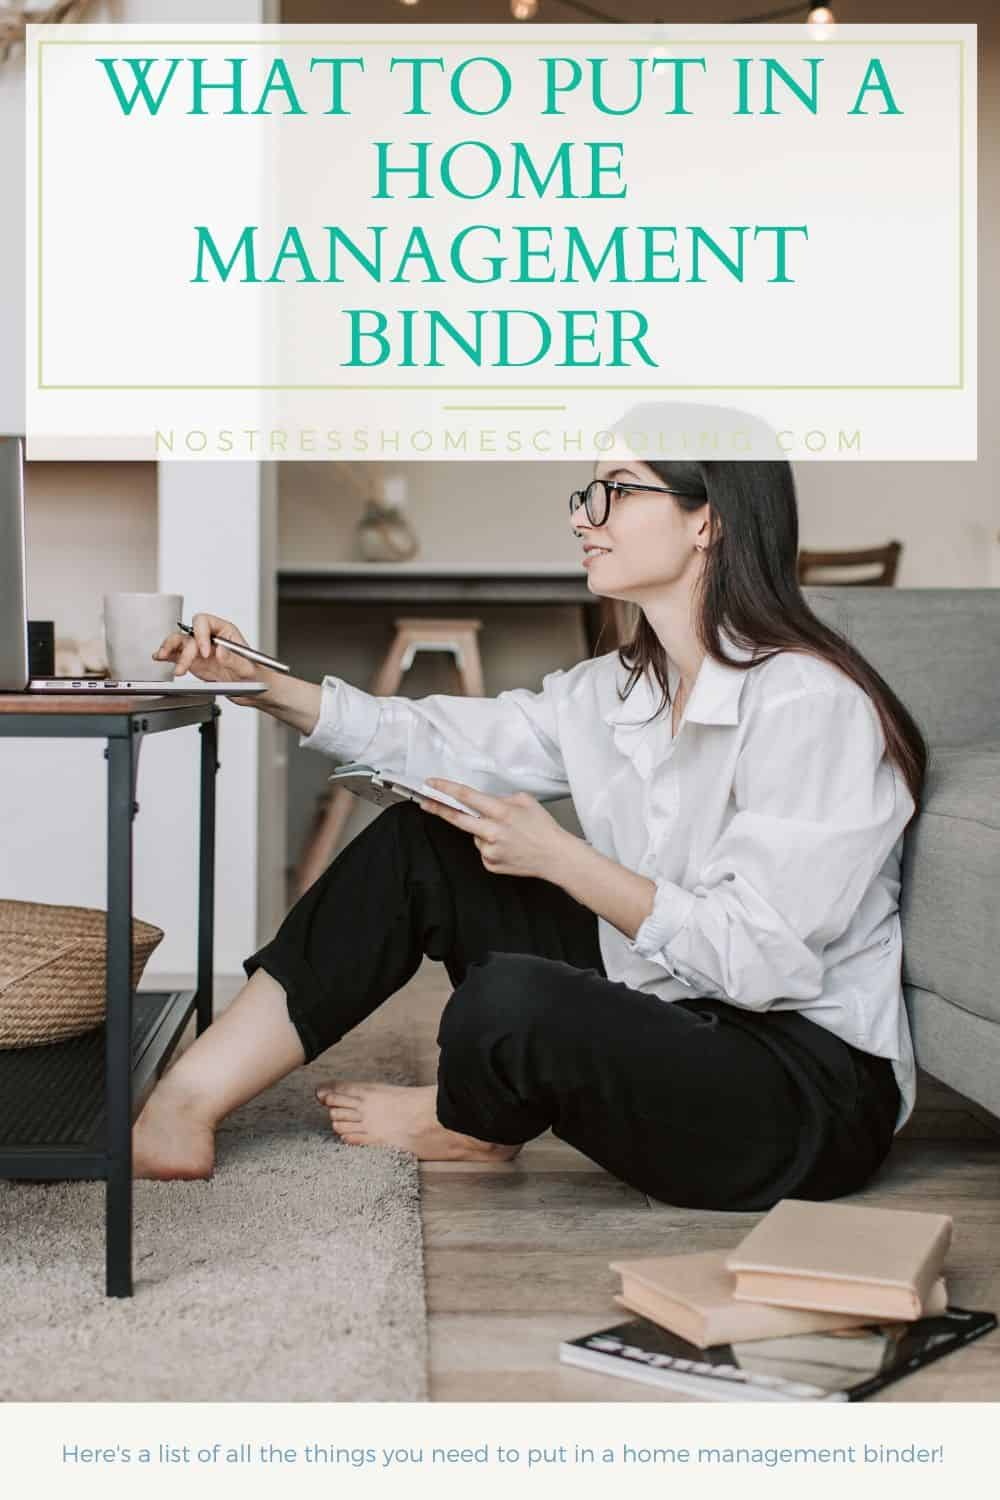 Ever wondered what a home management binder was or what to put it in? This post will help you put your own home binder together.